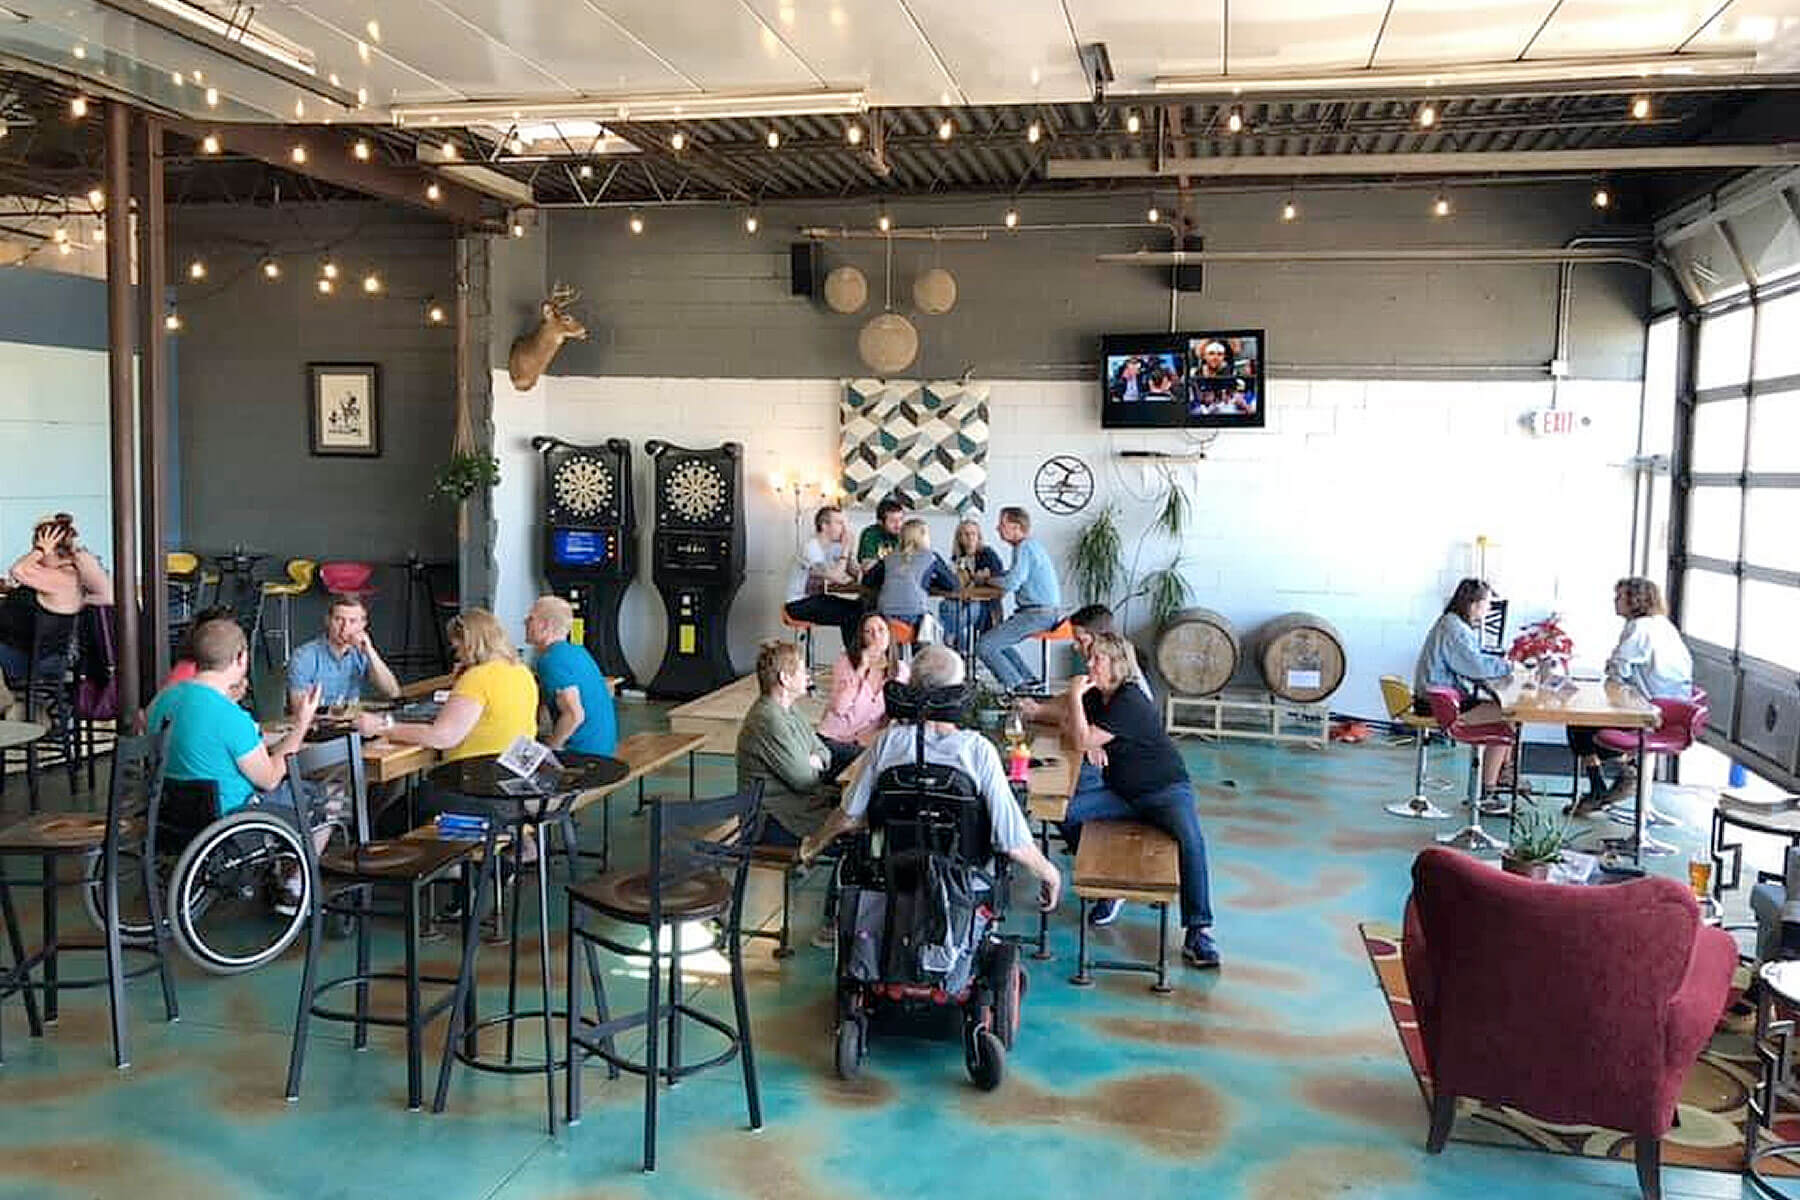 Inside the taproom at Zymurgy Brewing Company in Menomonie, Wisconsin